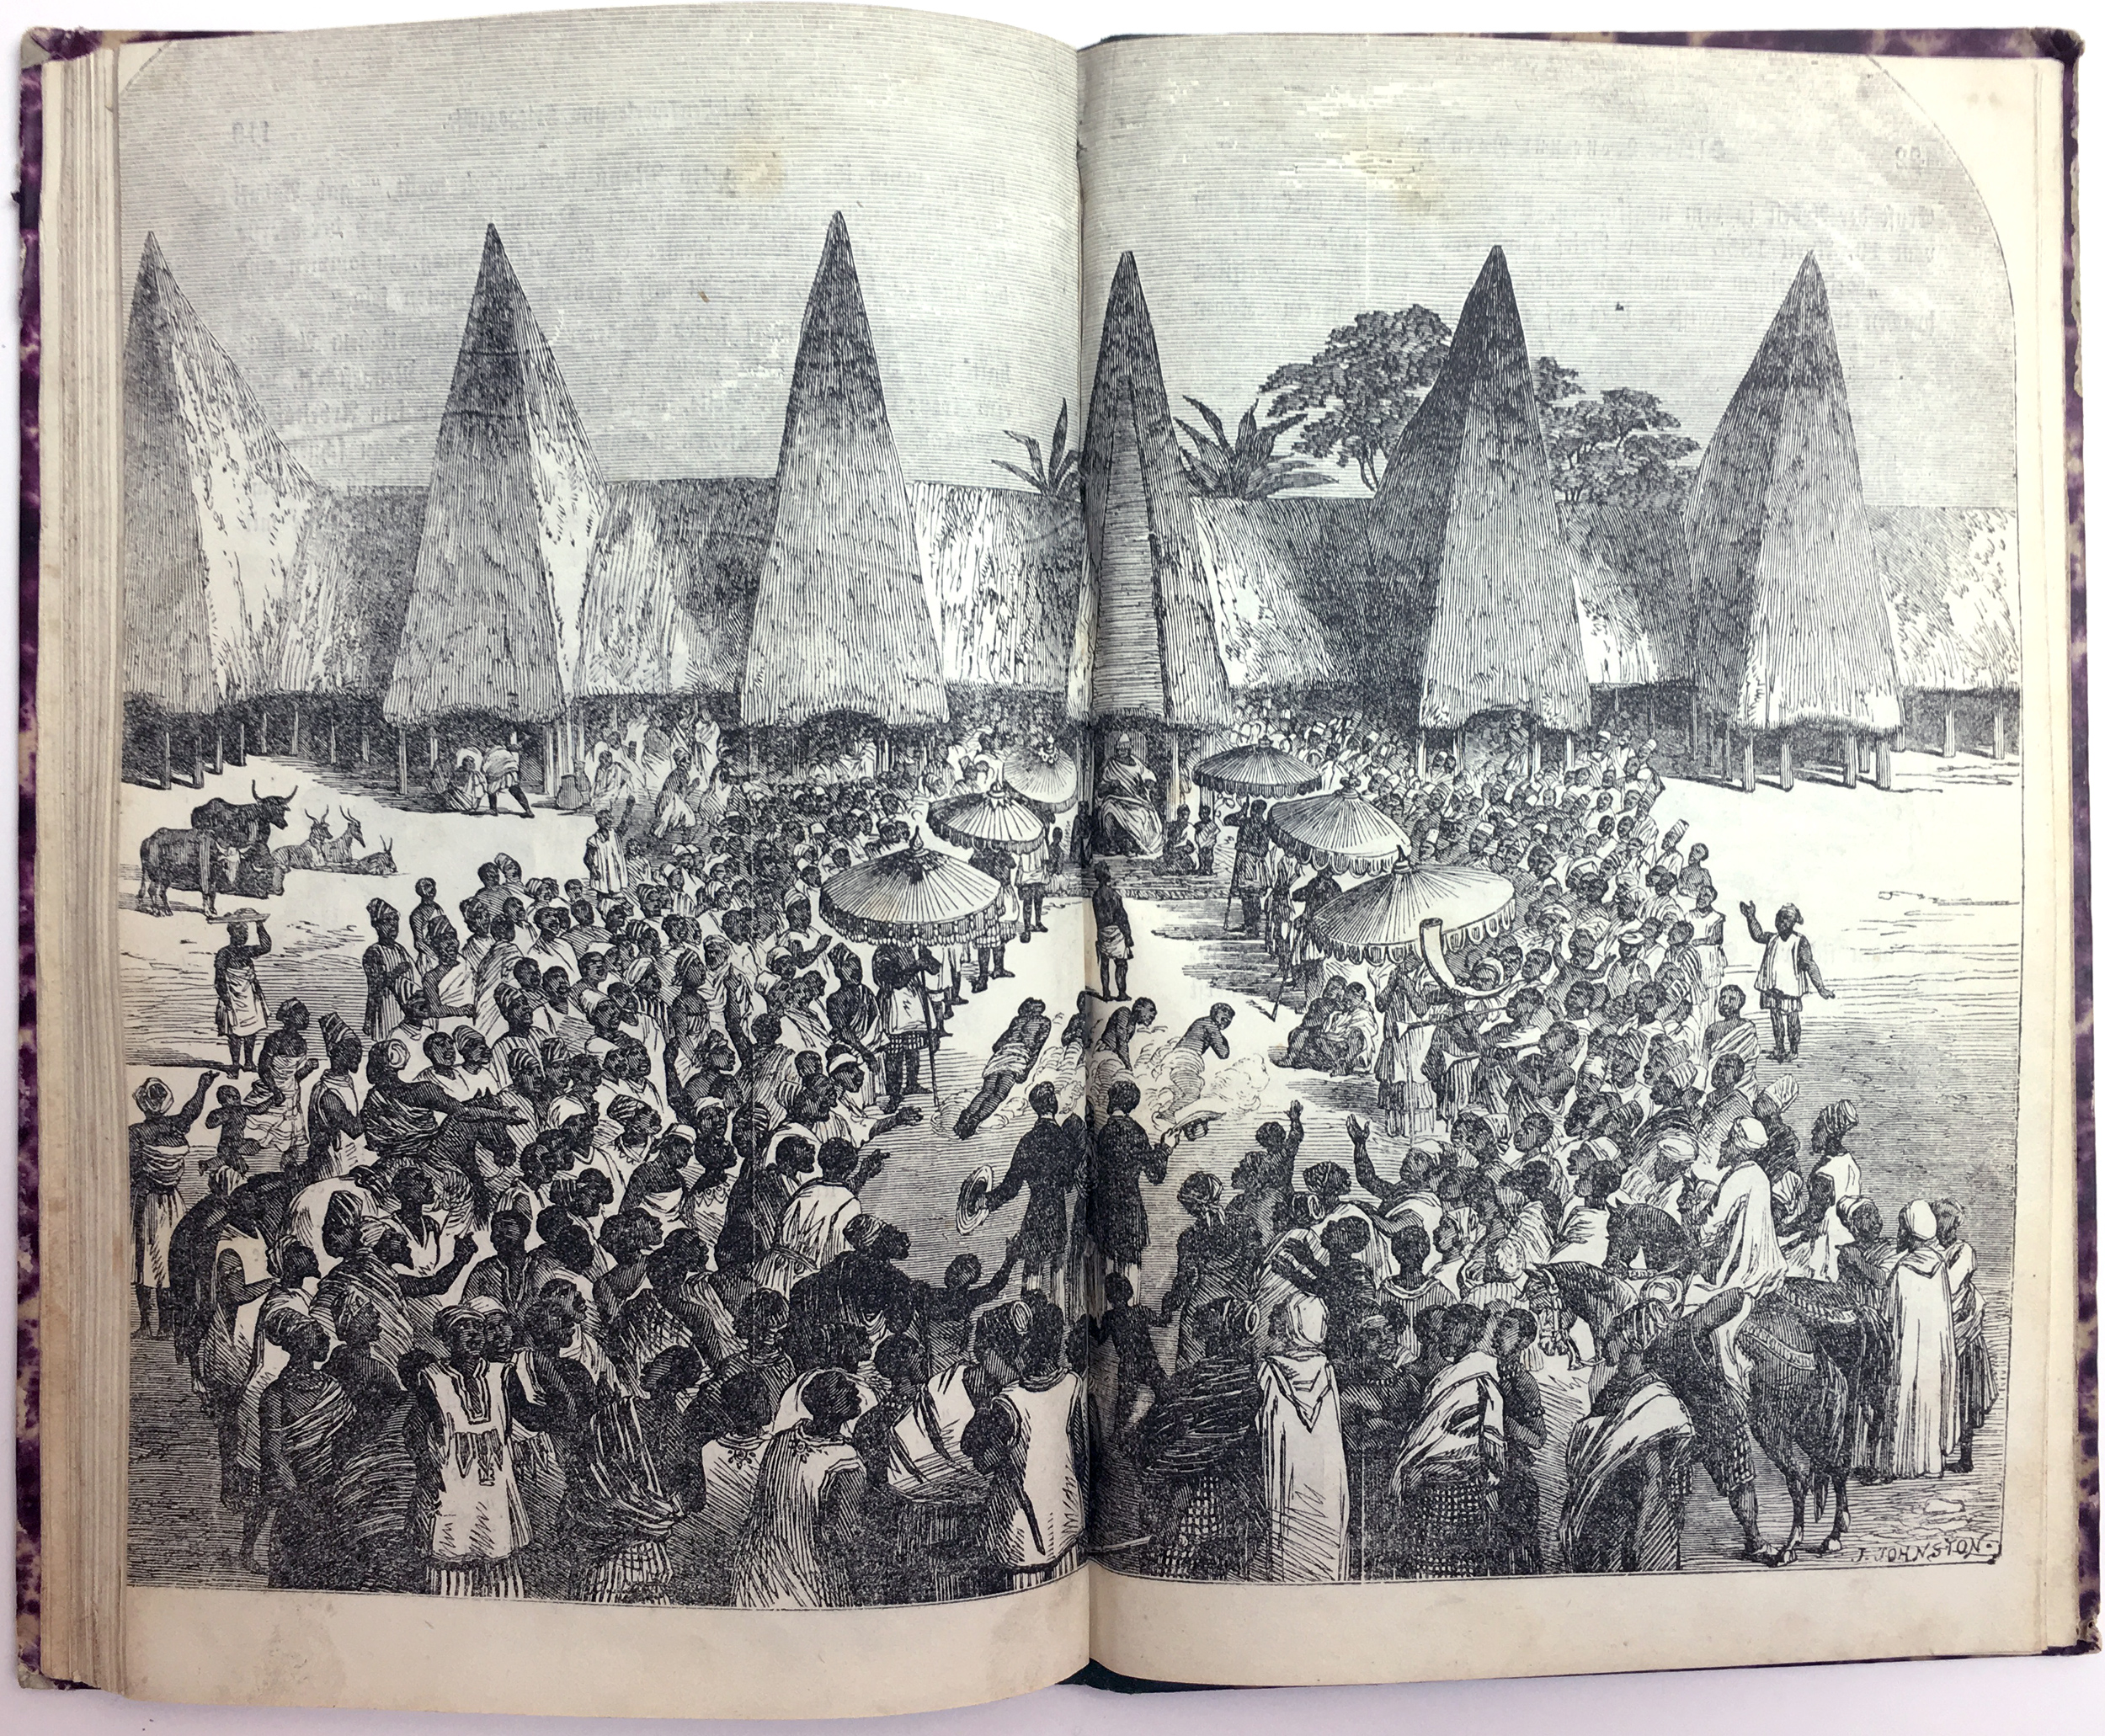 """Impressive Yorùbáarchitecture, a reception at the palace.See the people prostrating in the middle, doing the """"dọ̀bálẹ̀"""" greeting, also turning on their sides. Unfortunately today most of the new-built Yorùbá palaces resemble a colonial Greek-inspired neo-classical """"European temple"""" style.Even in the city of IléIfẹ̀ the Yorùbá shrines look like neo-classical Greek temples today."""